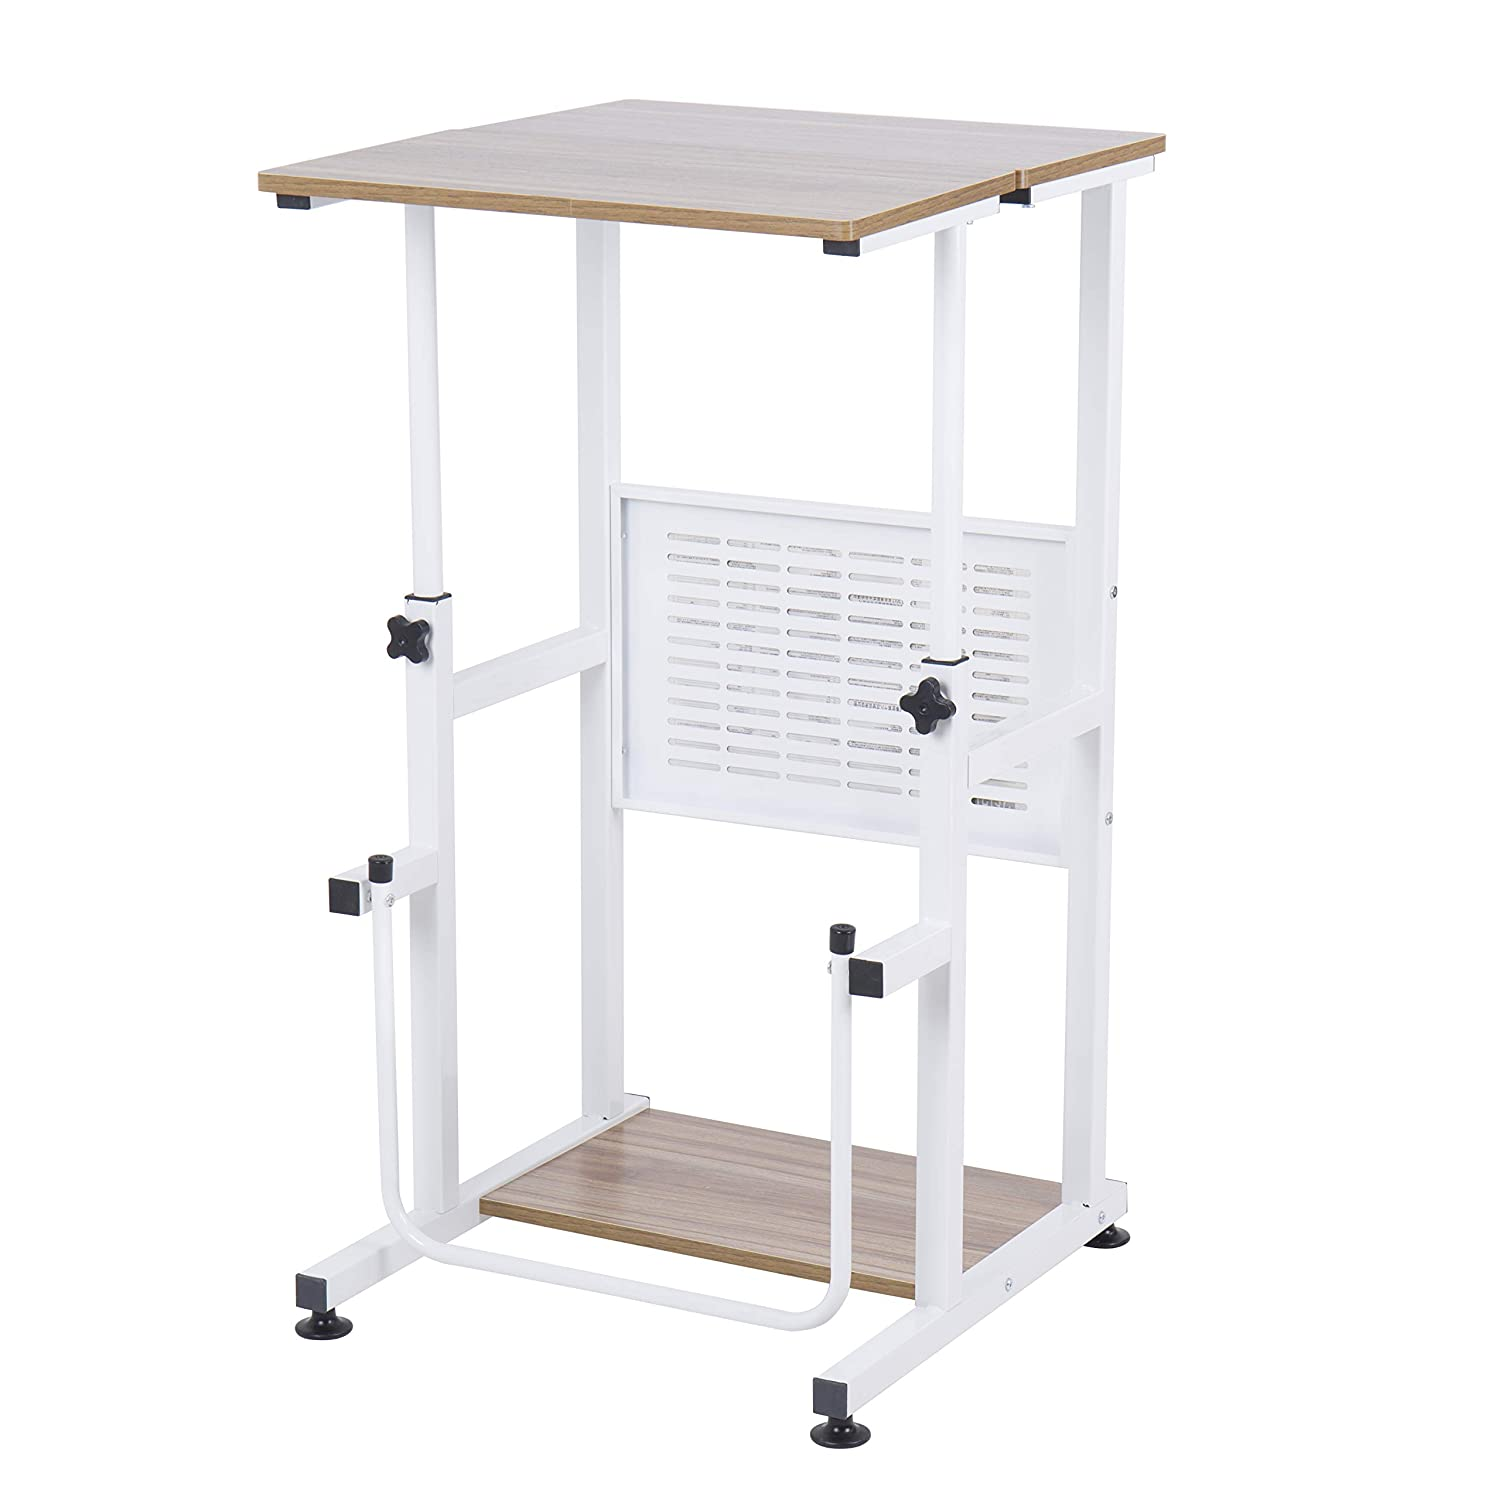 SDADI Adjustable Height Standing Desk Student Desk with Swinging Footrest Optional for Standing and Seating 2 Modes, Dark Grain